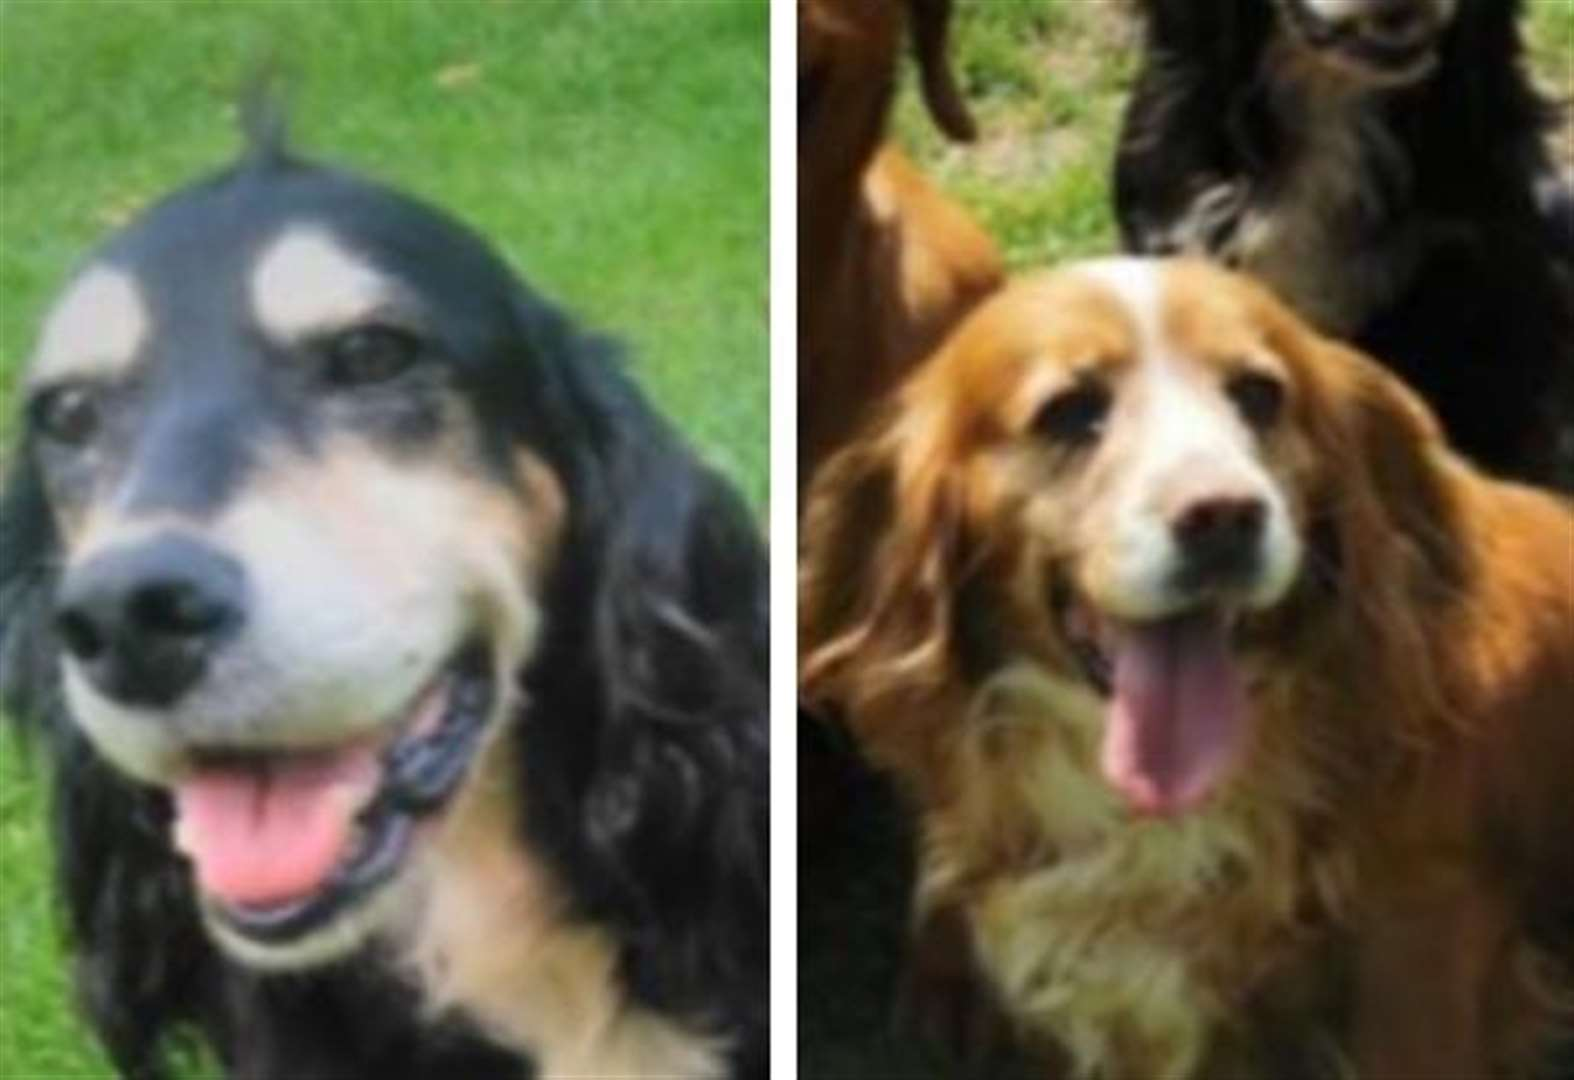 Beloved spaniels stolen in early morning break-in